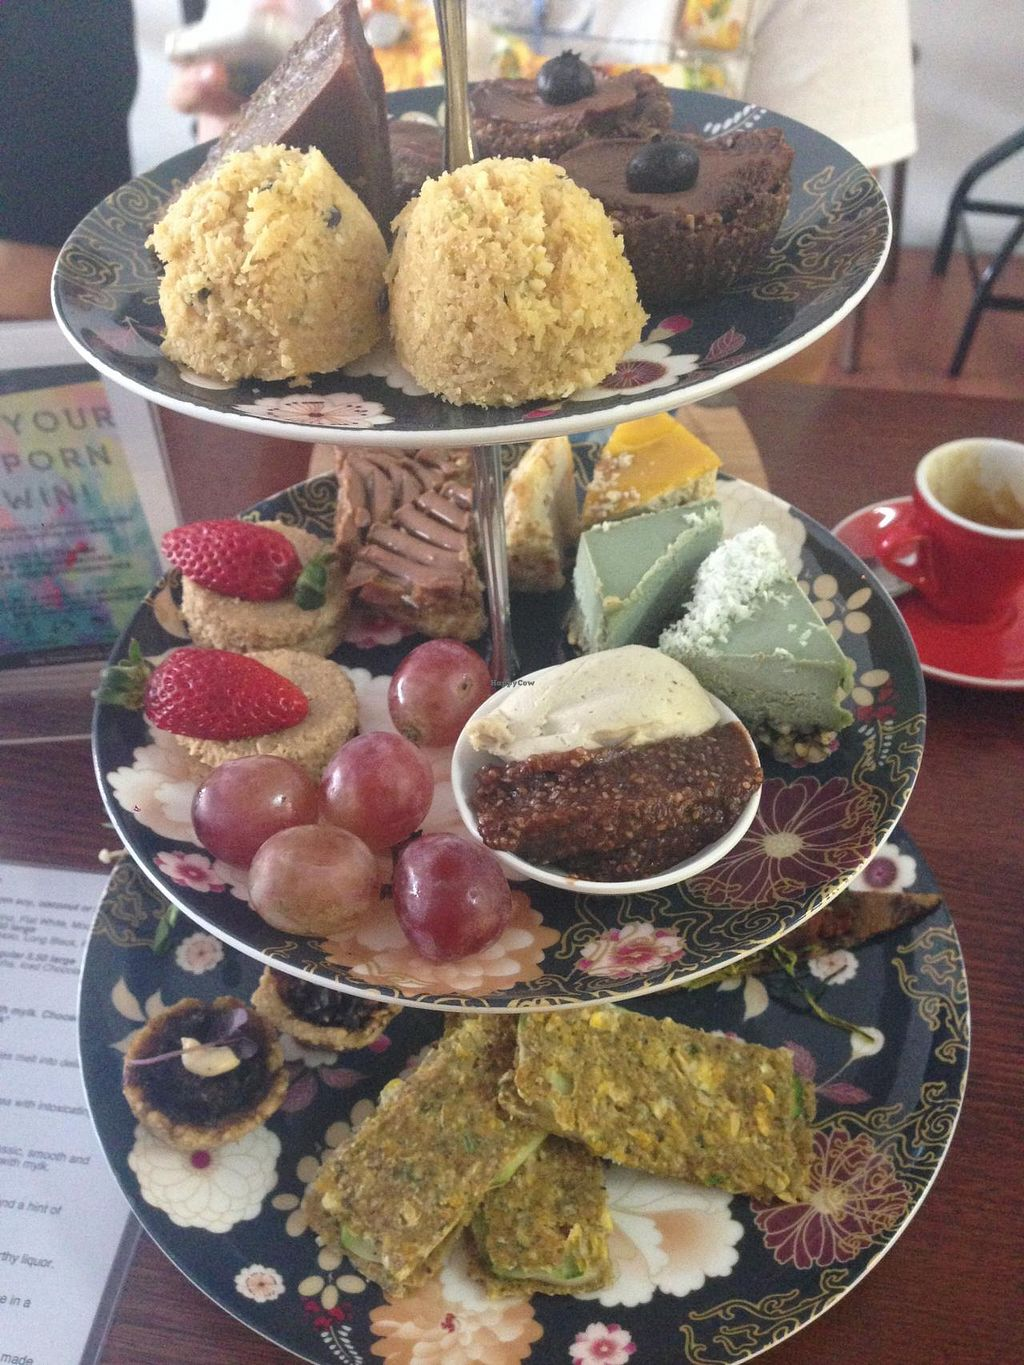 """Photo of CLOSED: Sadhana Kitchen  by <a href=""""/members/profile/xjohn"""">xjohn</a> <br/>Organic Raw Vegan High Tea <br/> July 20, 2014  - <a href='/contact/abuse/image/31212/74551'>Report</a>"""